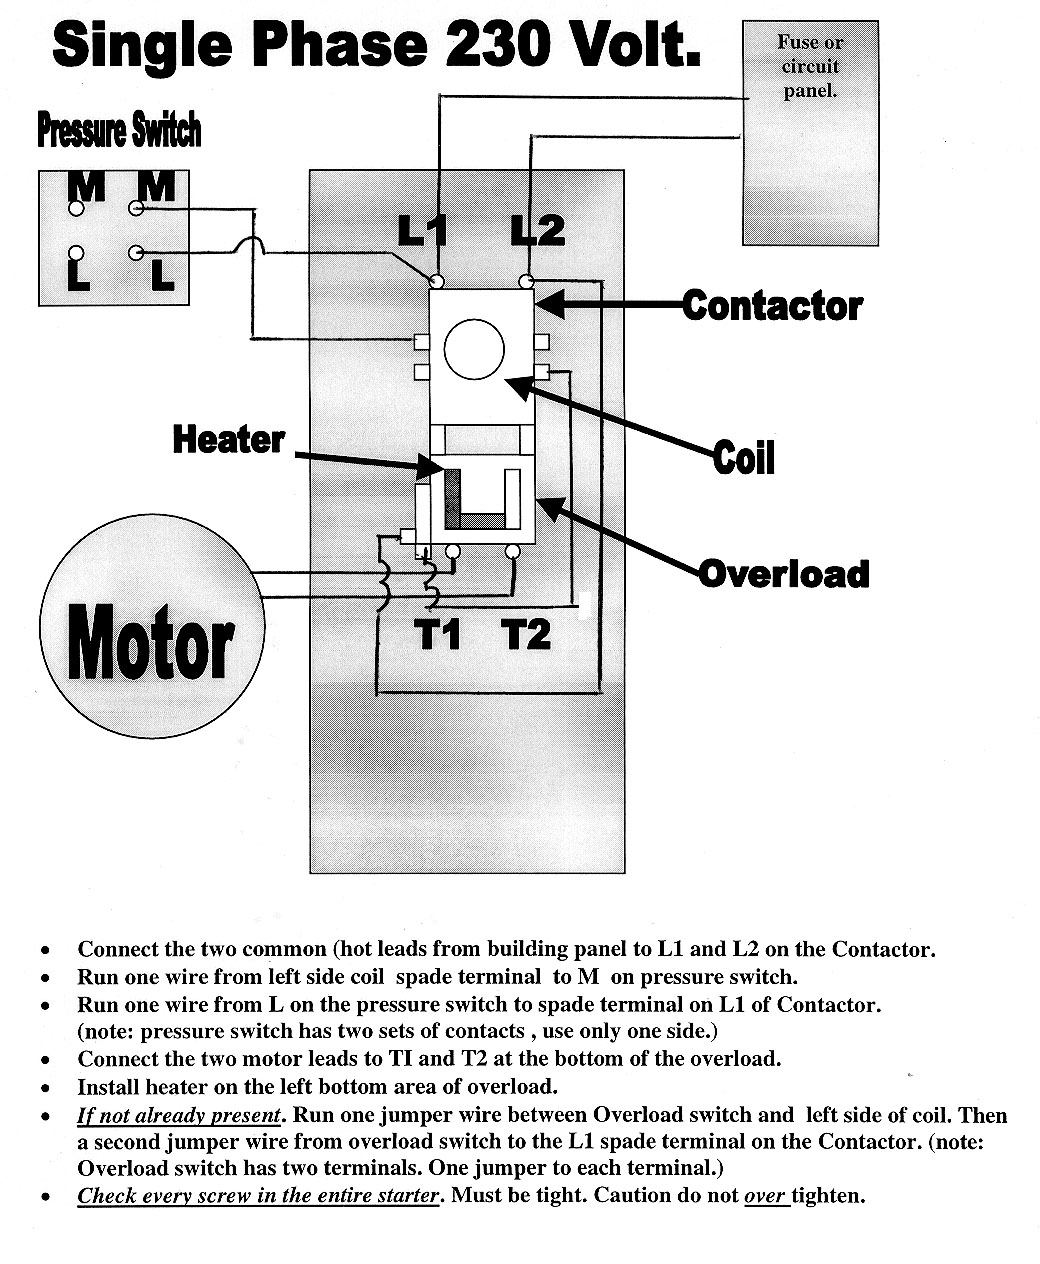 Square d starters click here to viewprint single phase wiring diagrams asfbconference2016 Image collections